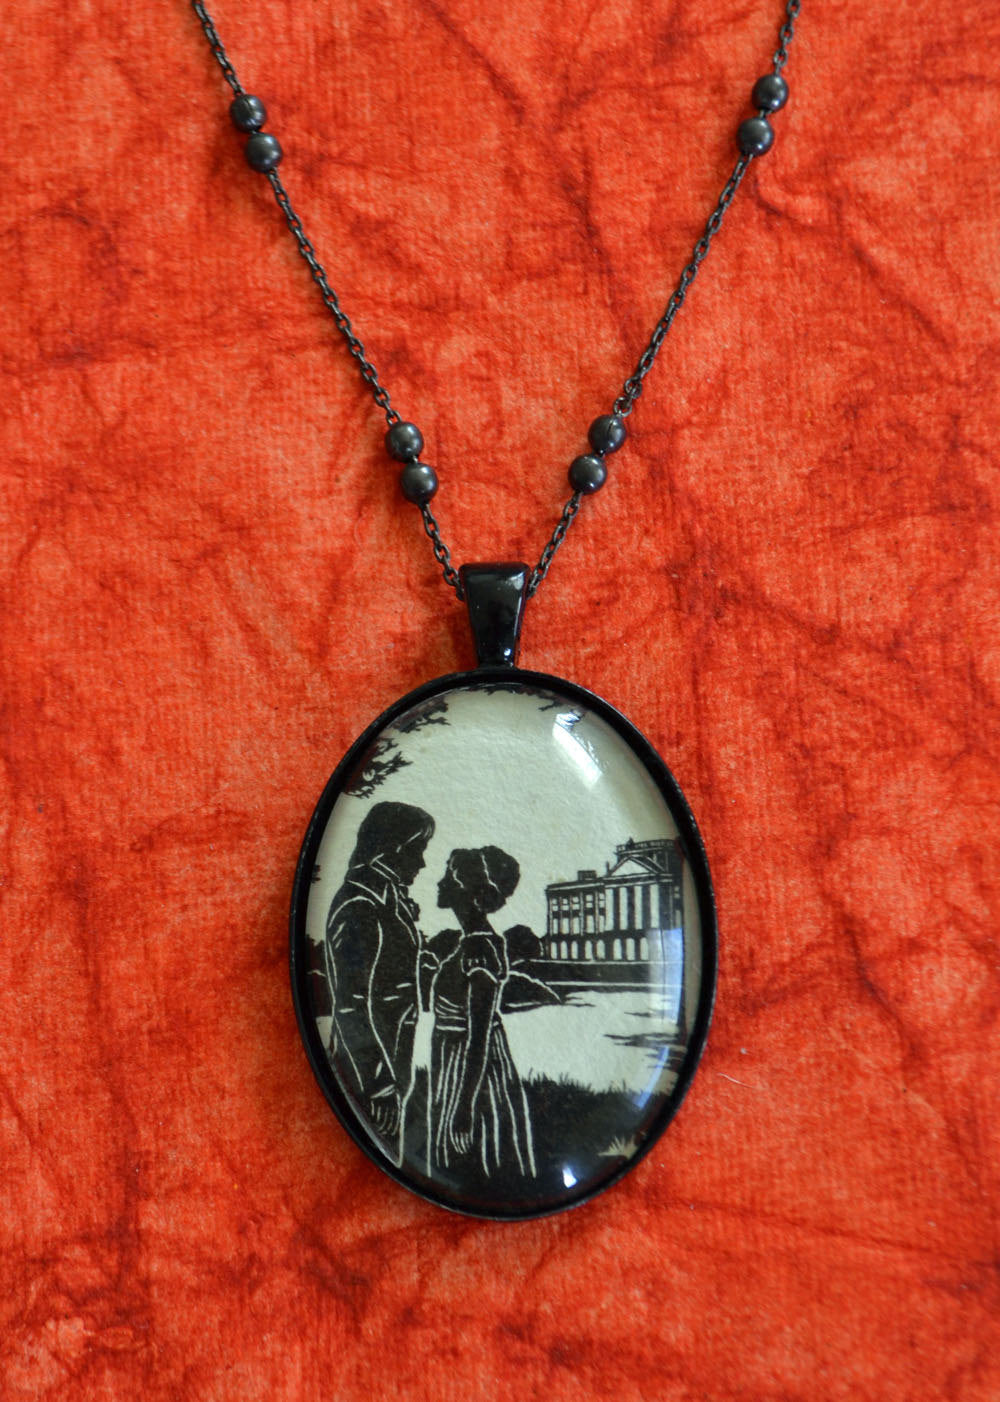 PRIDE AND PREJUDICE Necklace - Elizabeth and Darcy, pendant on chain - Silhouette Jewelry